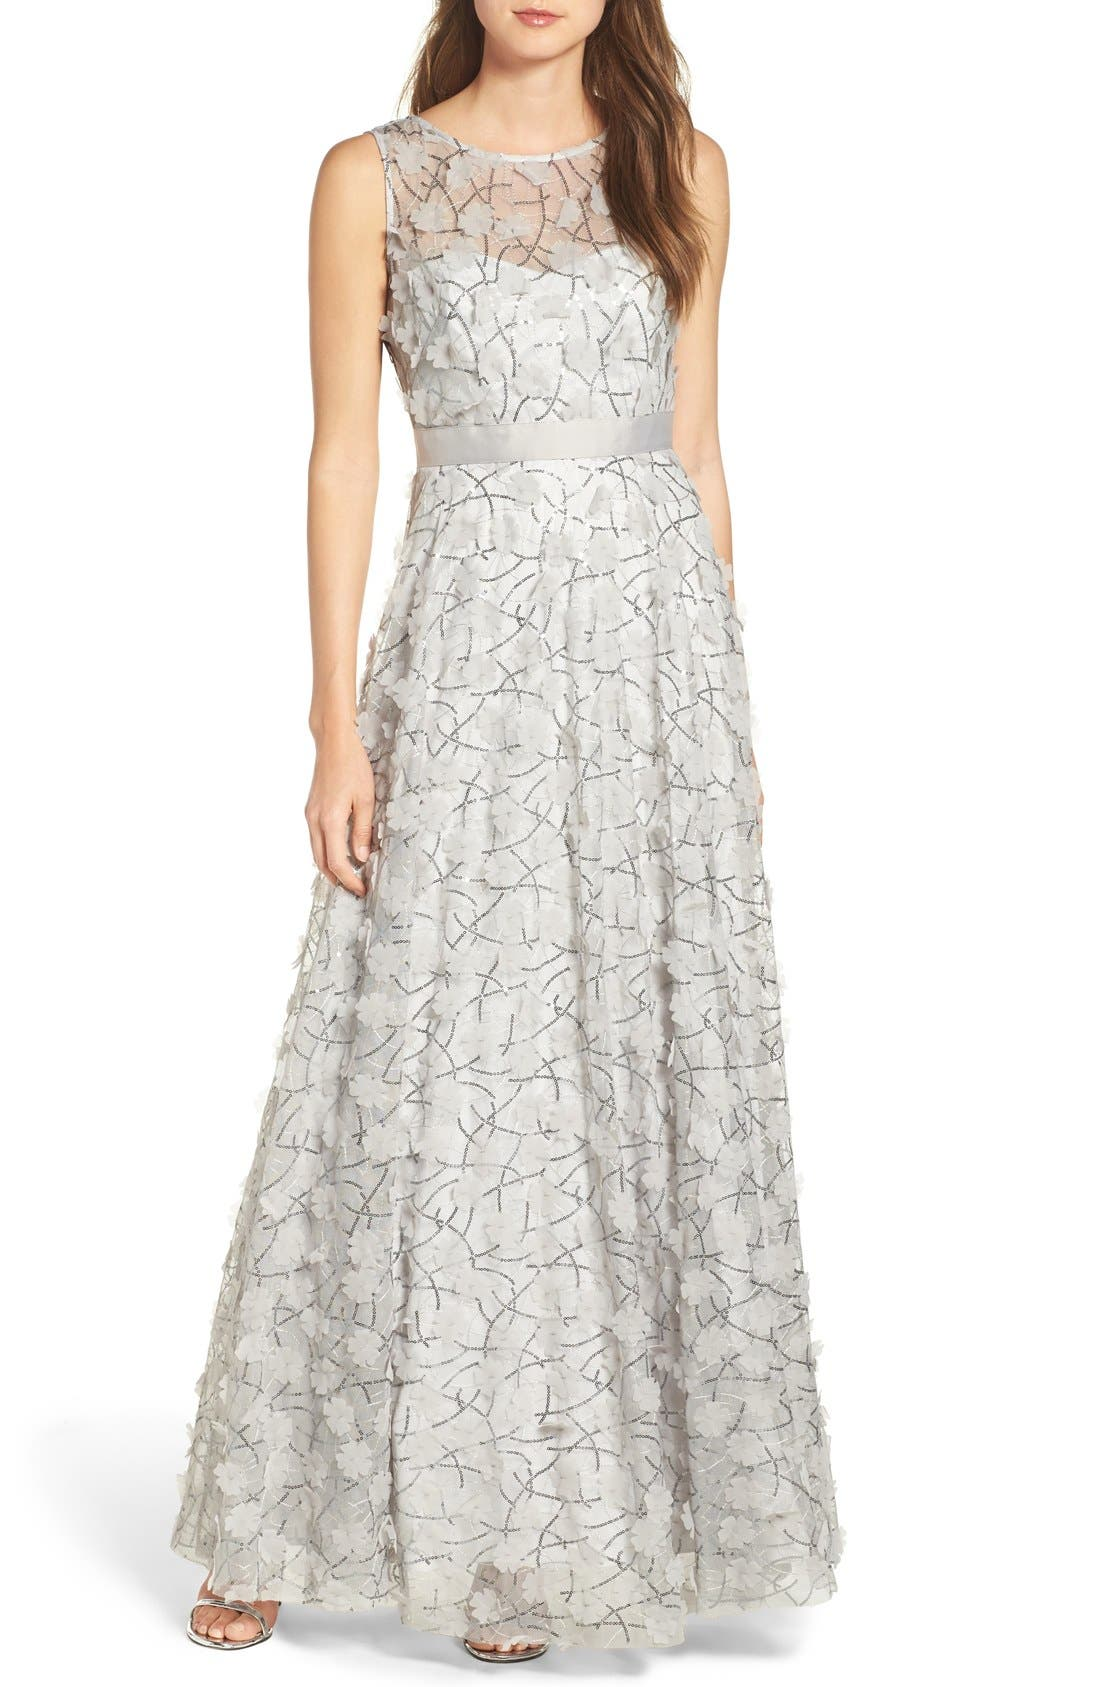 Alternate Image 1 Selected - Eliza J Embellished Mesh Ballgown (Regular & Petite)